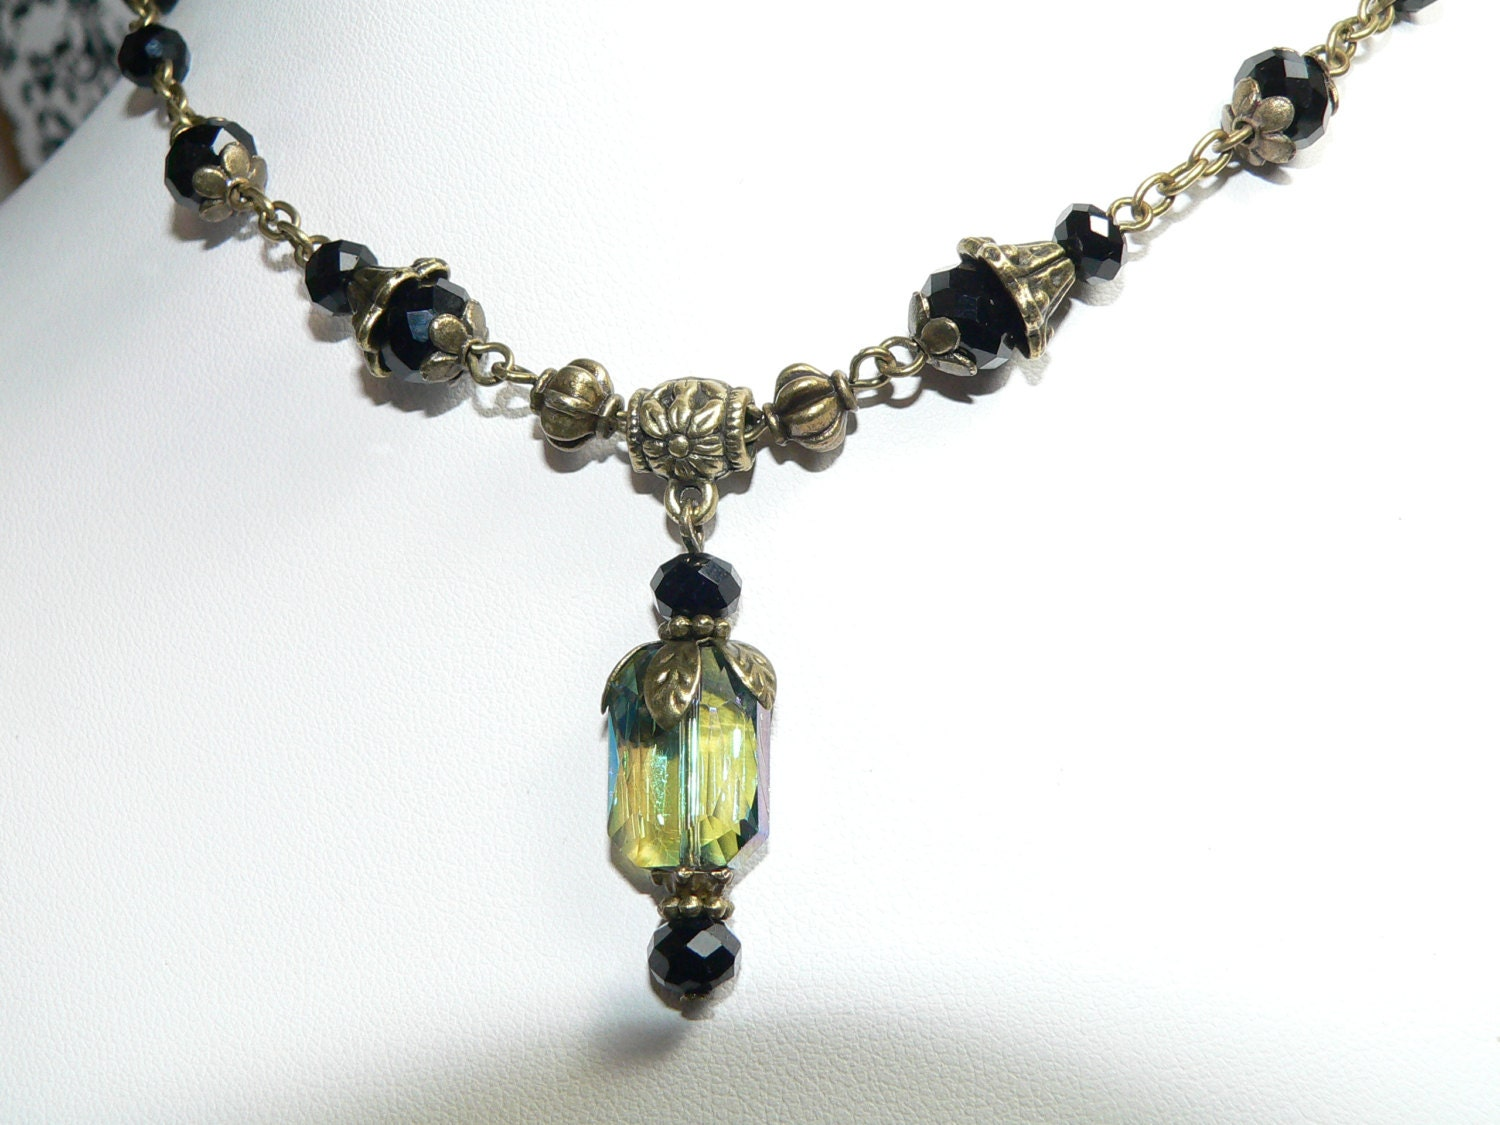 Downton Abbey Inspired Jewelry - Vintage Emerald Cut ...